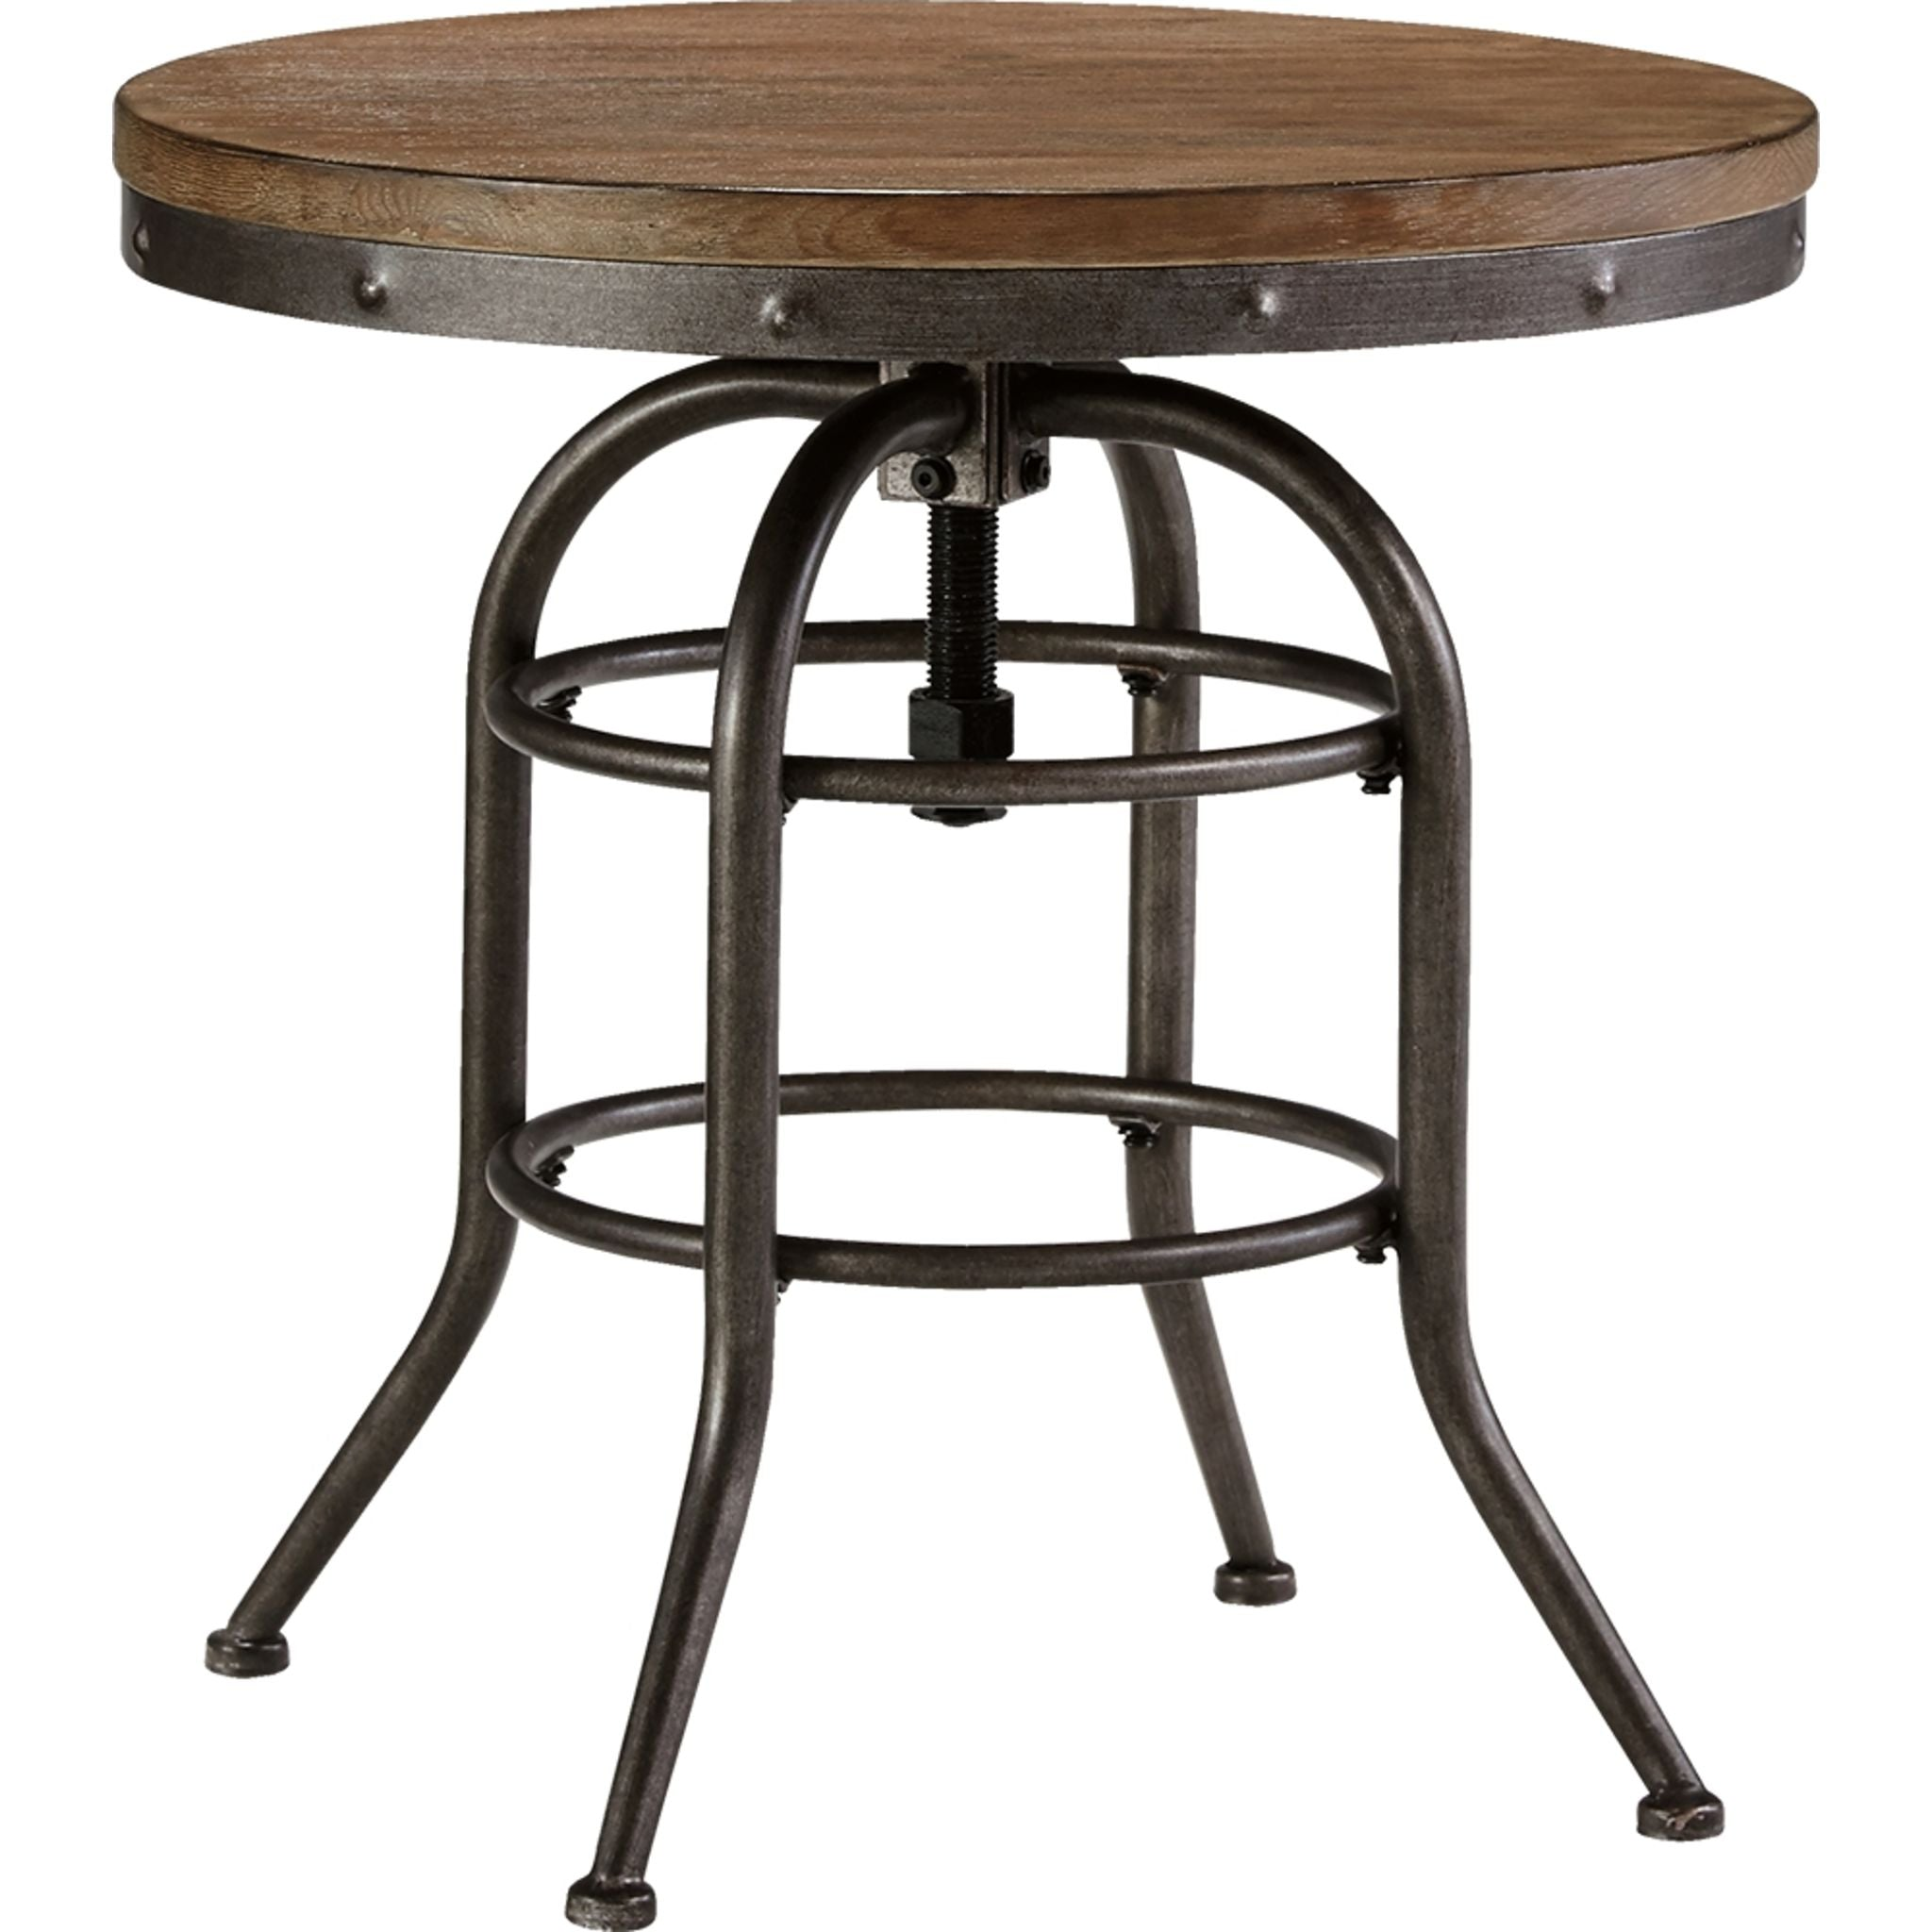 Vennilux End Table - Grey Brown